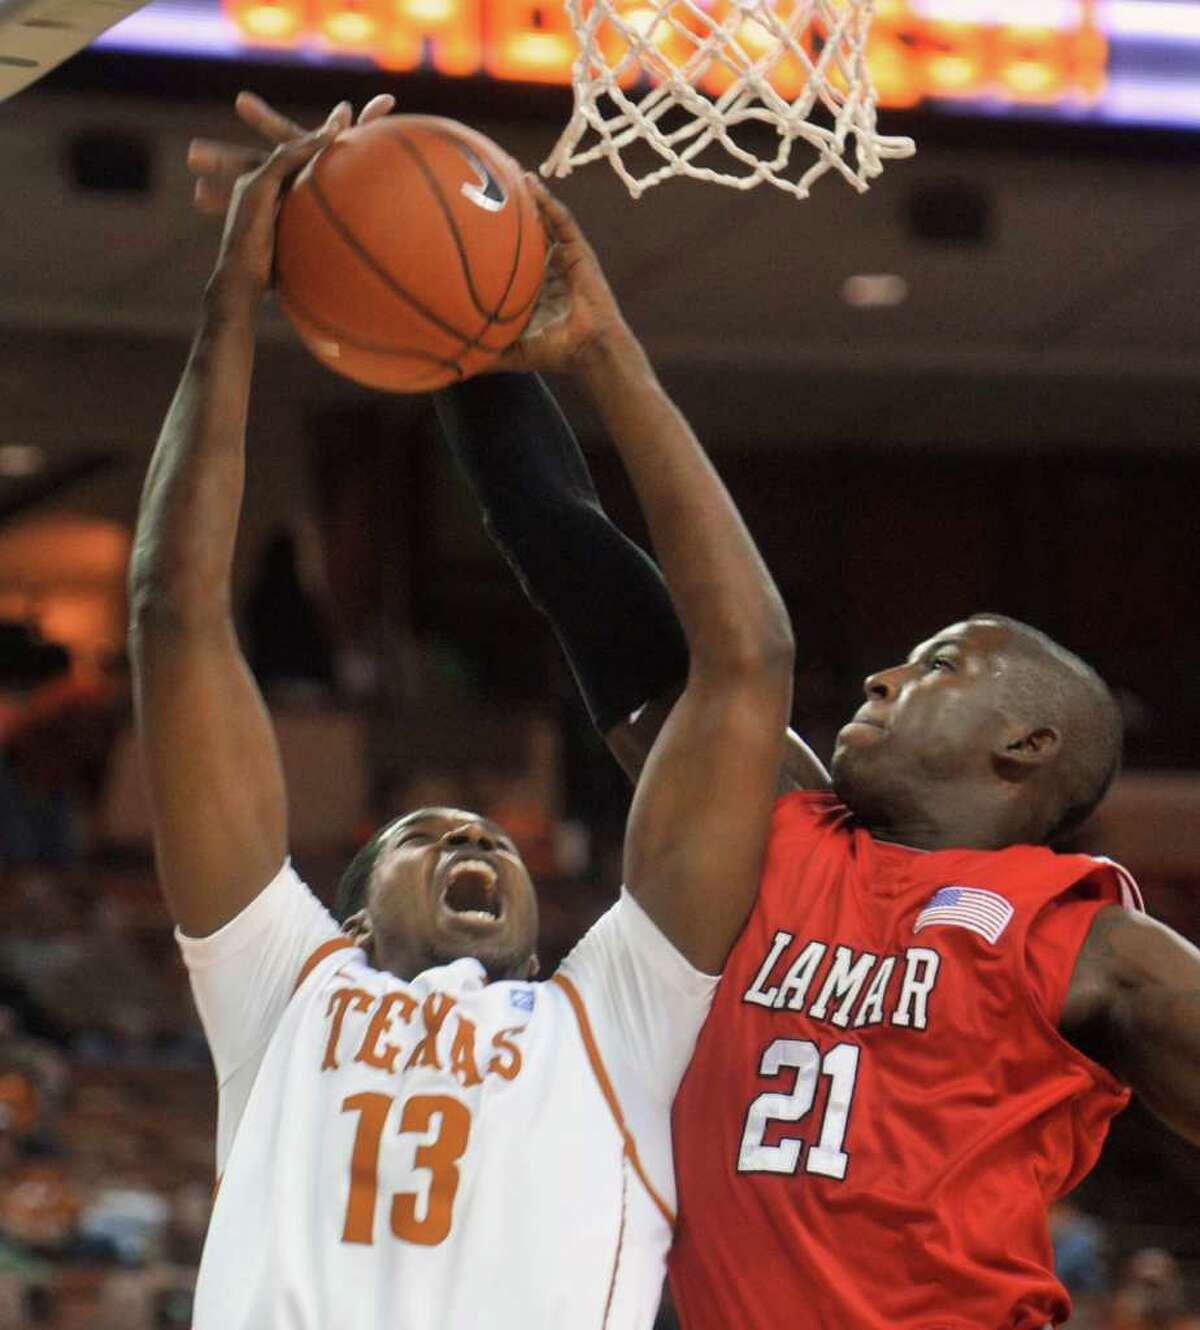 Texas center Tristan Thompson, left, goes up for a shot against Lamar guard Charlie Harper during the first half of an NCAA college basketball game in Austin, Texas, Wednesday, Dec. 1, 2010. (AP Photo/Michael Thomas)